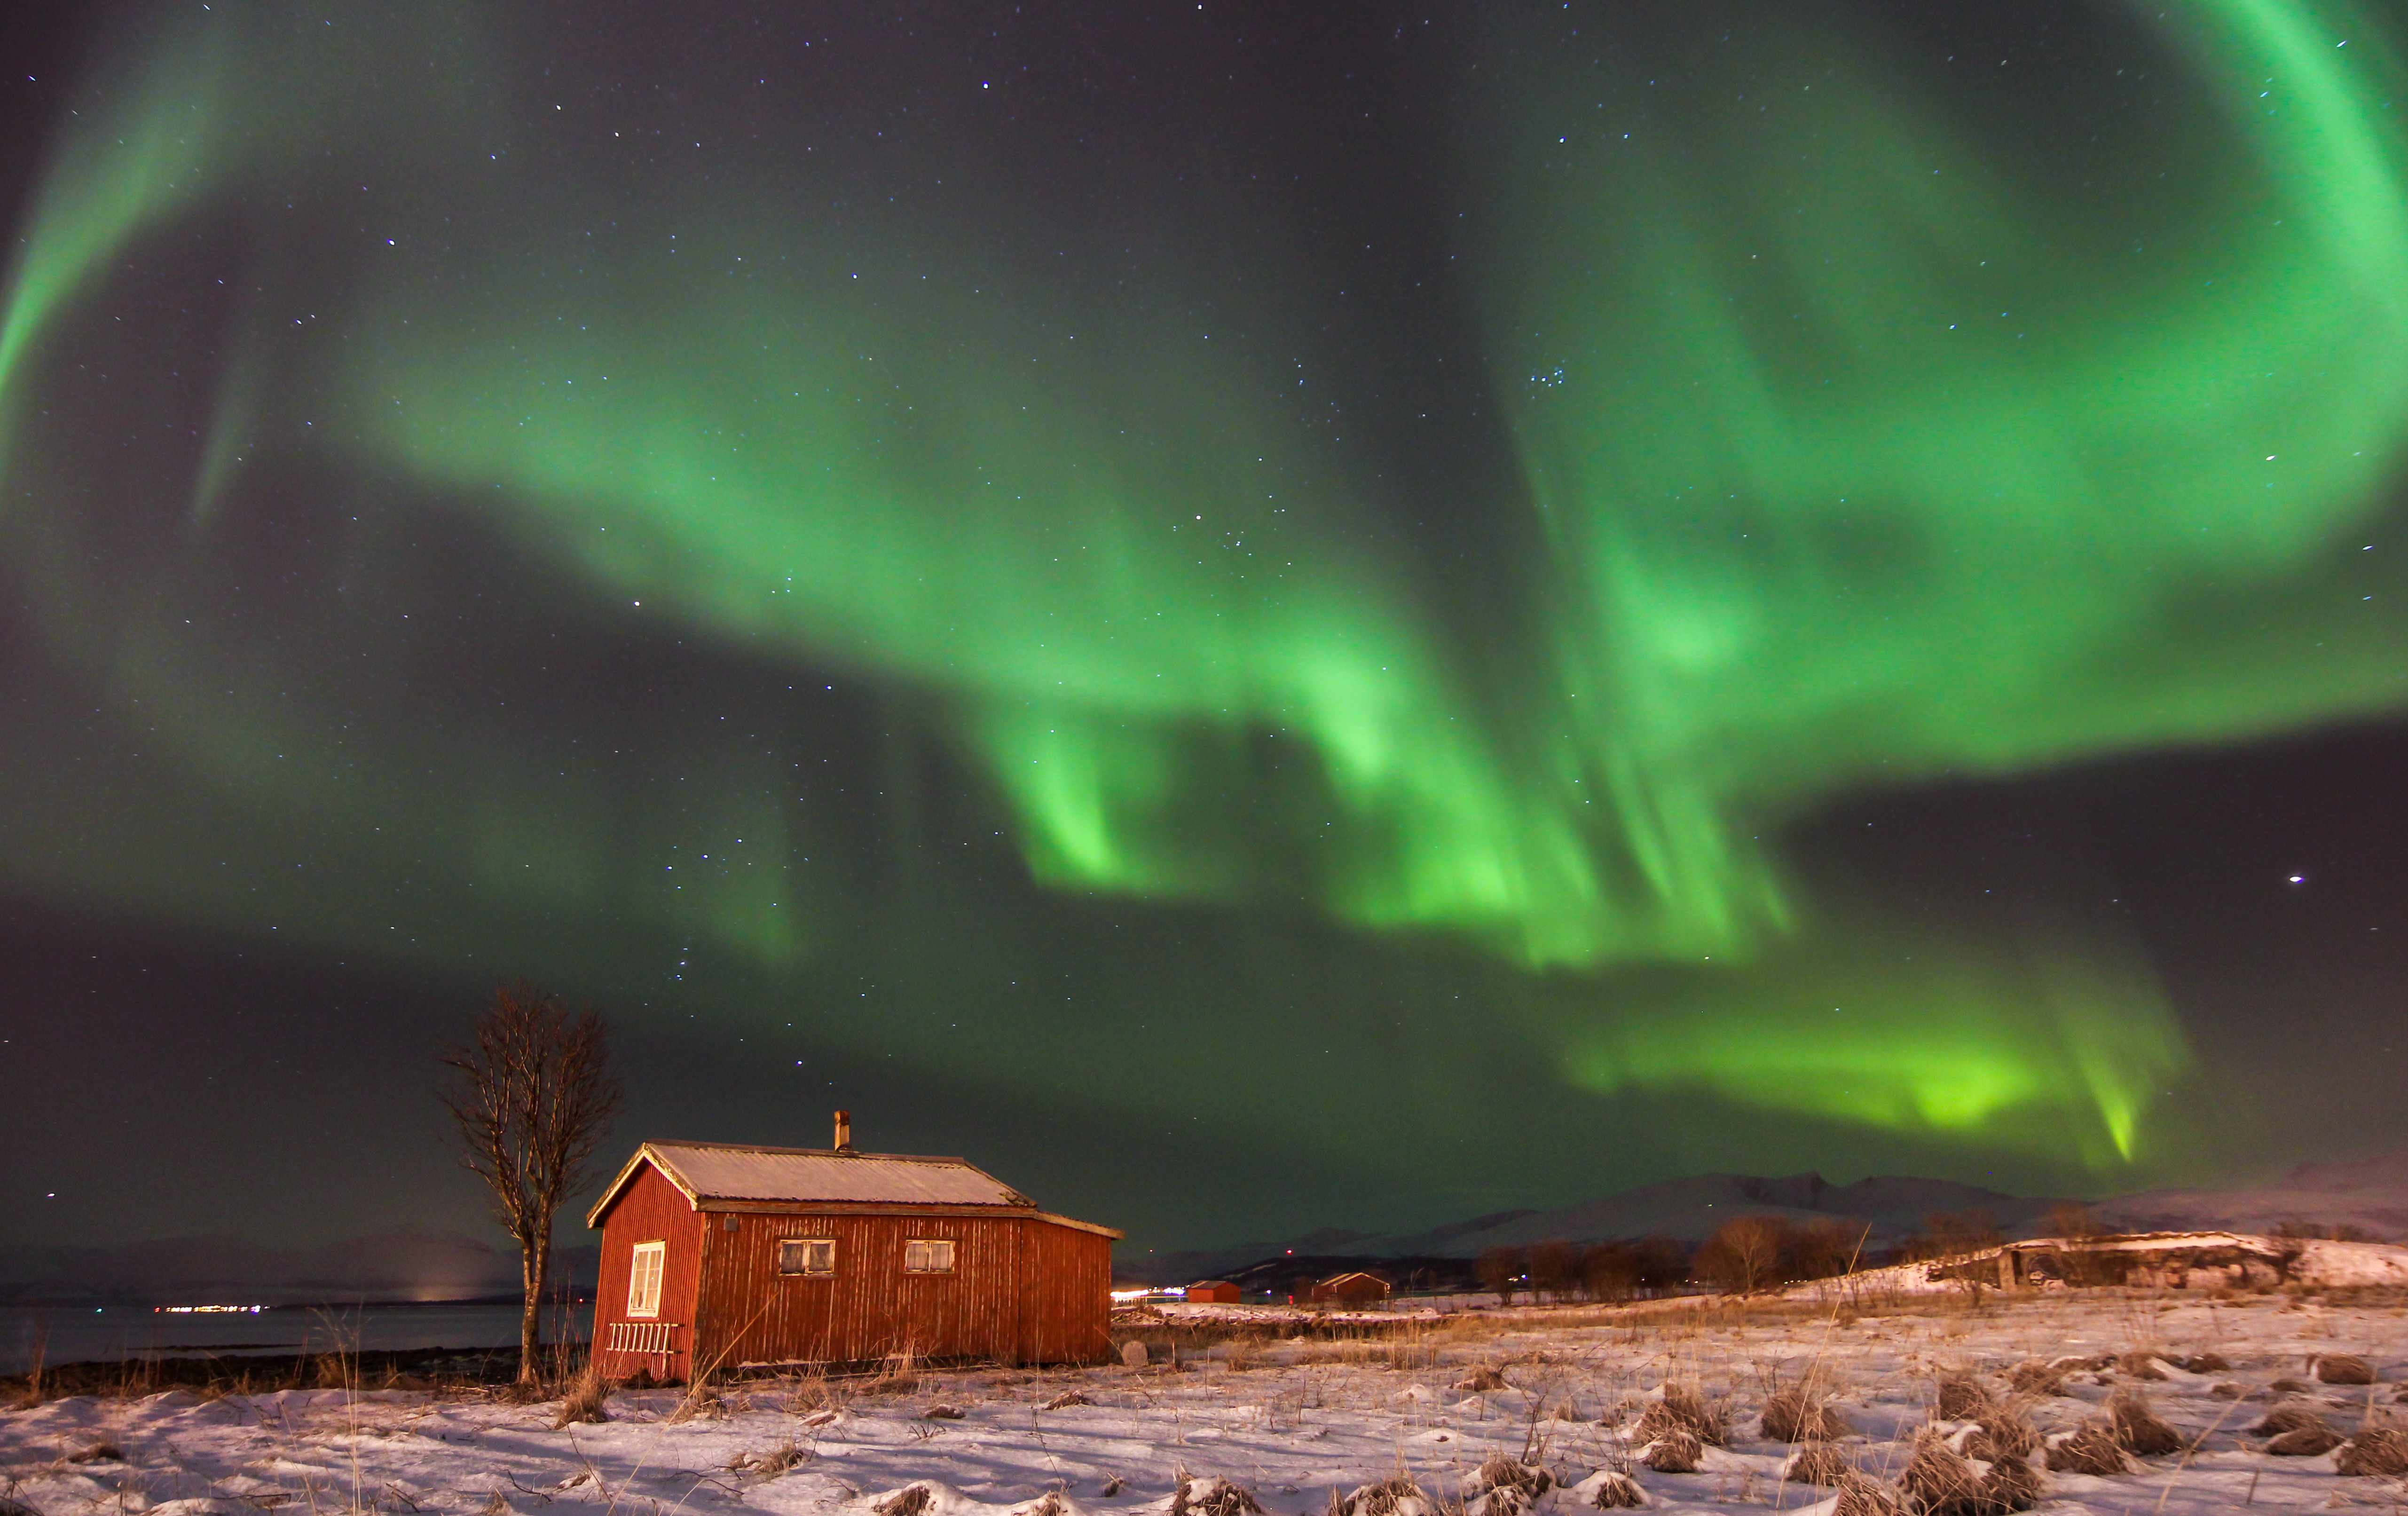 Northern lights (aurora borealis) dances over an abandoned cabin in Tromsø, Northern Norway. (Photo by Hanneke Luijting via Getty Images)